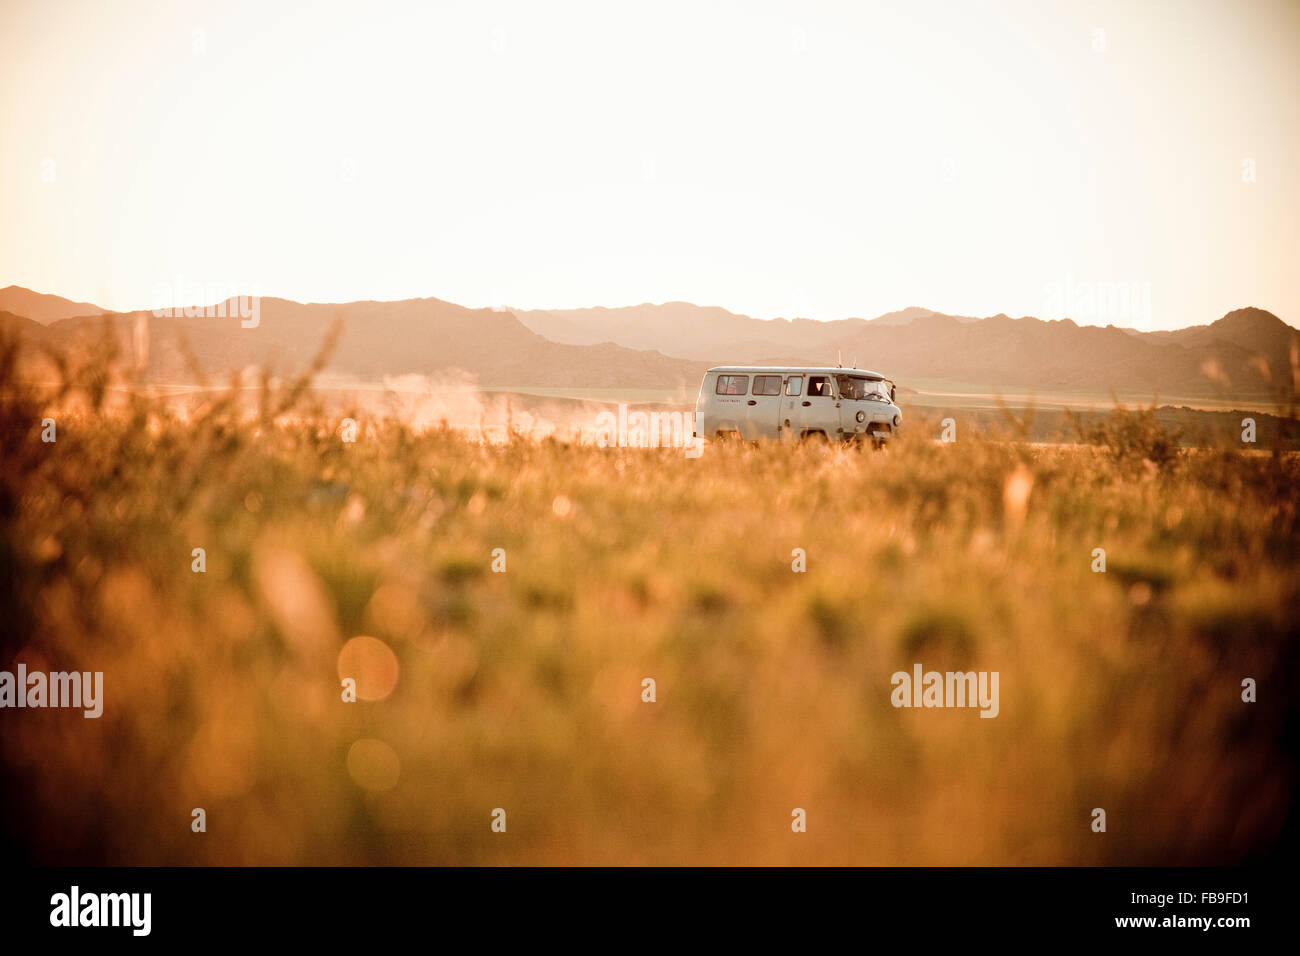 A Russian 'bread loaf' van on the steppes of central Mongolia. - Stock Image